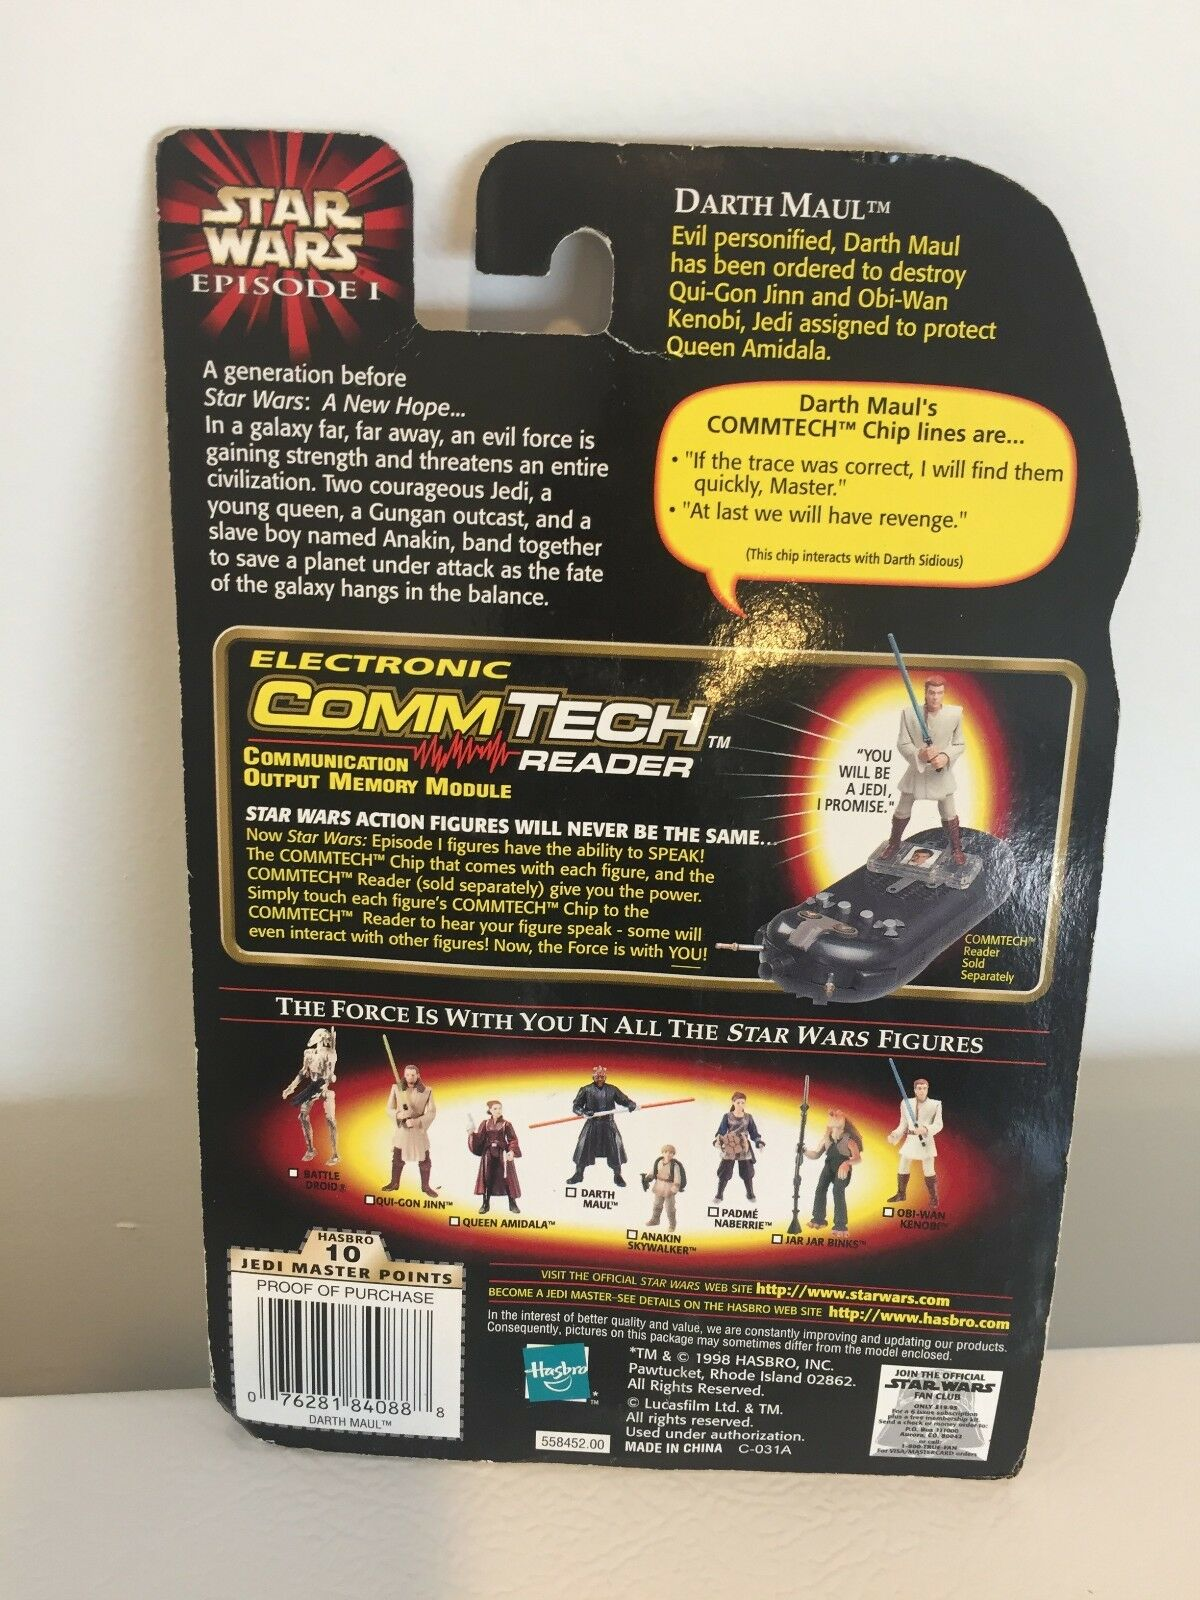 NEW Darth Maul Jedi Duel Duel Duel with Double-Bladed Lightsaber Action Figure Episode 1 2bc1fa